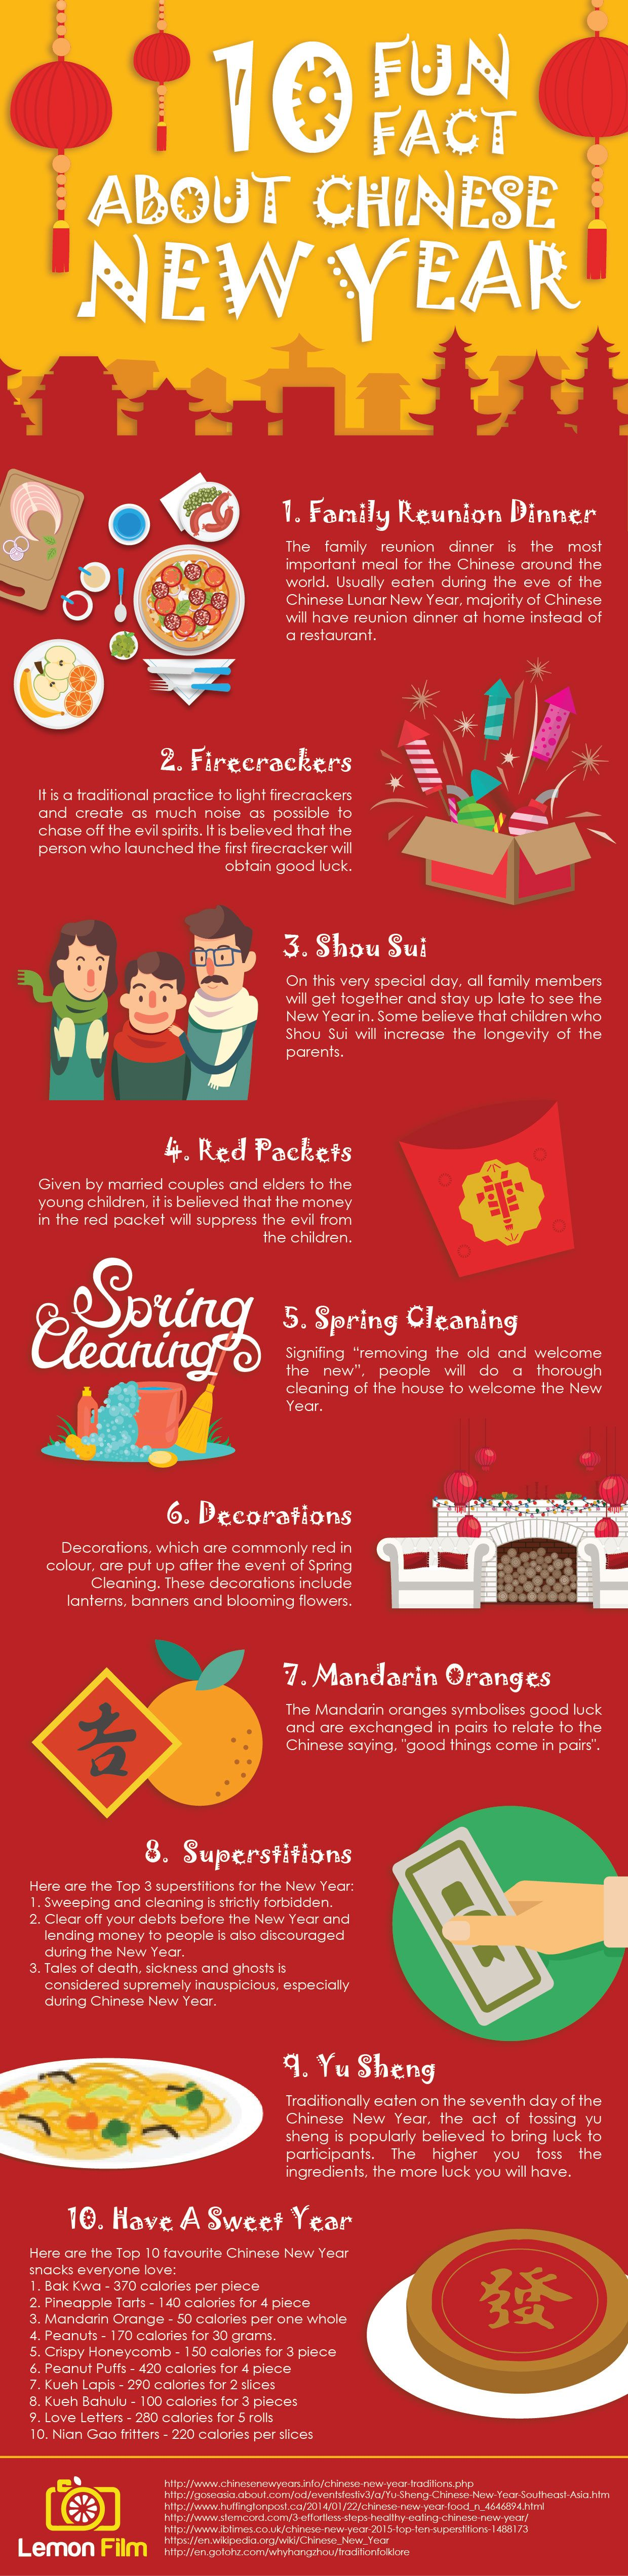 infographic from traditions to superstitions here are the 10 fun facts about chinese new year